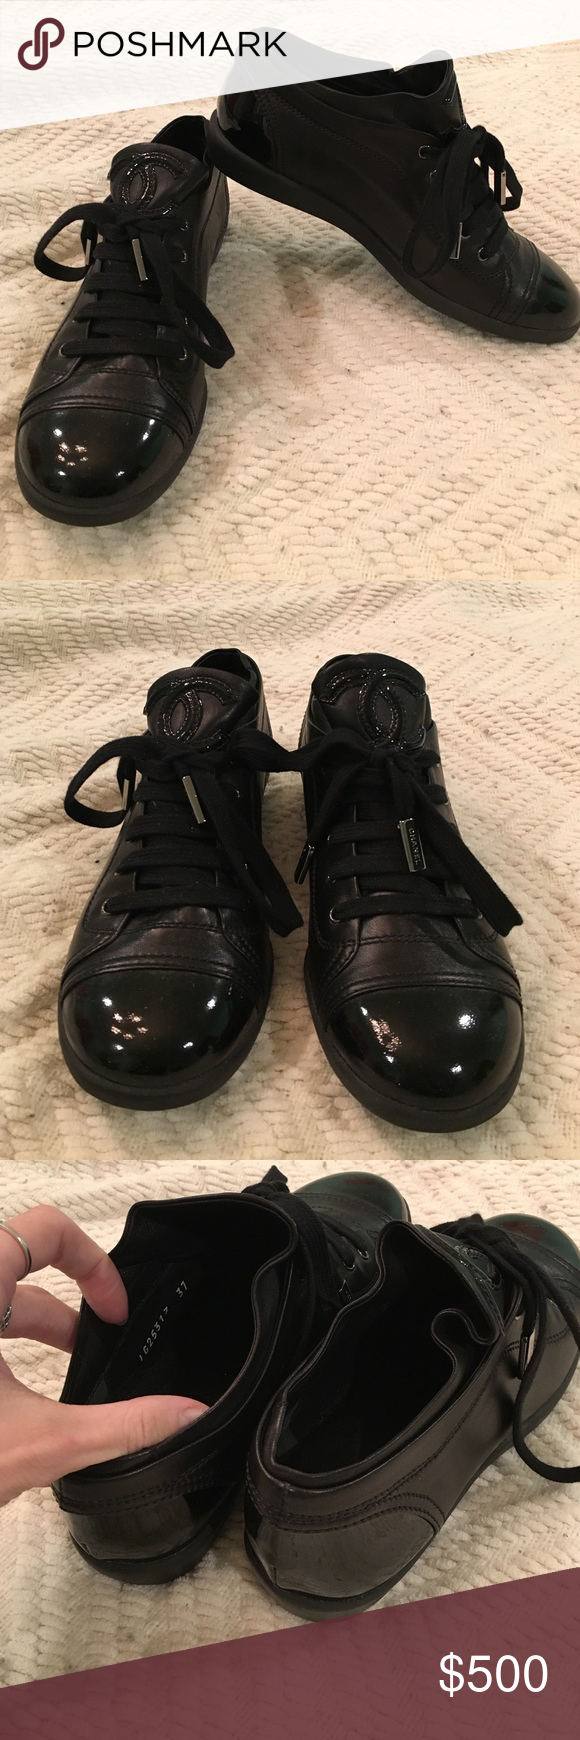 CHANEL black leather sneakers CHANEL sneakers. Patent leather toe and heel accents. CHANEL logo on tongue of shoe above where you would tie the laces. Metal CHANEL accents on ends of laces. Never worn out. In brand new condition. Size 37. Made in Italy. Open to offers! CHANEL Shoes Sneakers